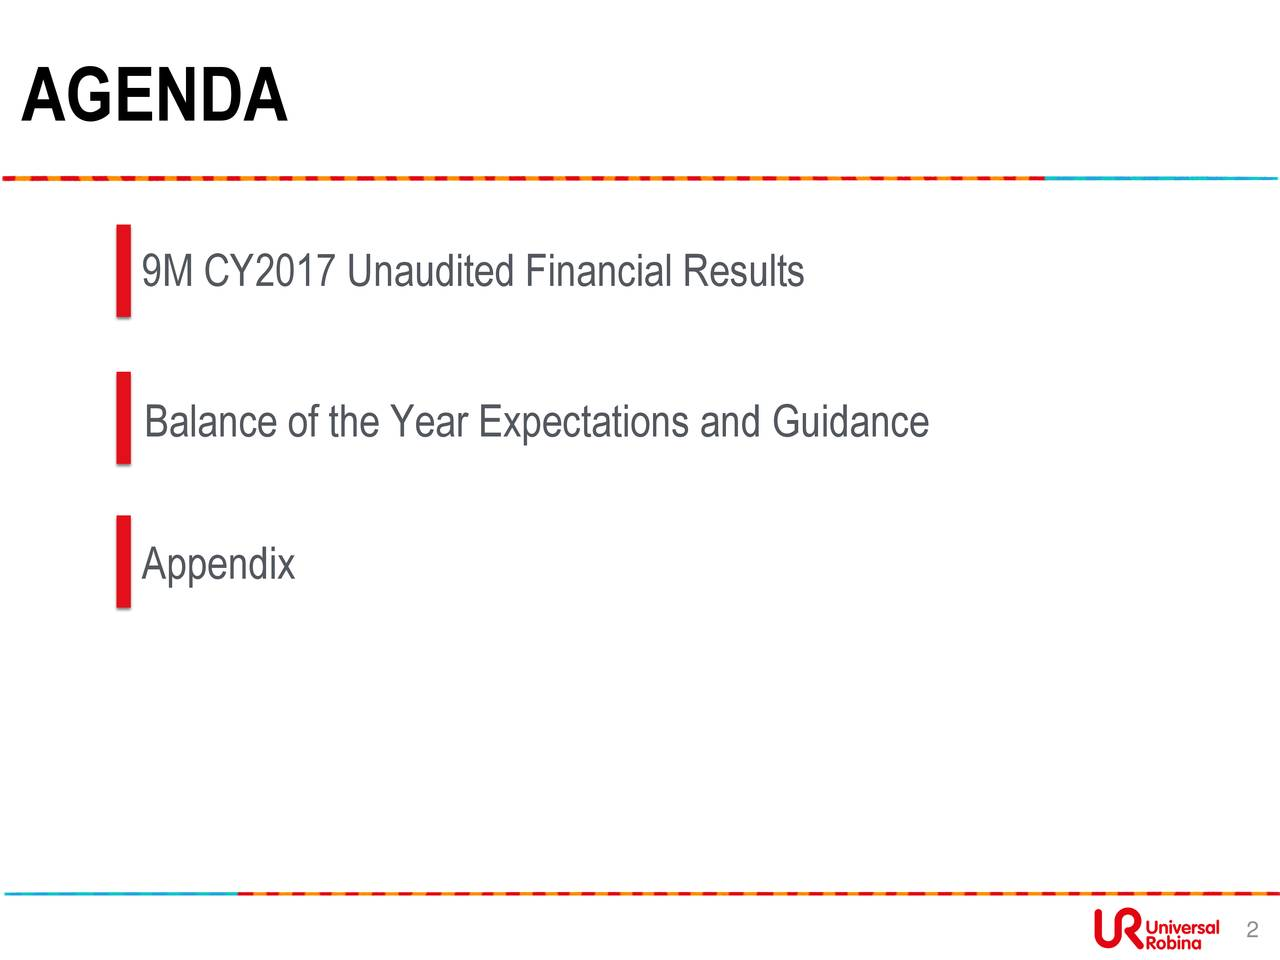 9M CY2017 Unaudited Financial Results Balance of the Year Expectations and Guidance Appendix